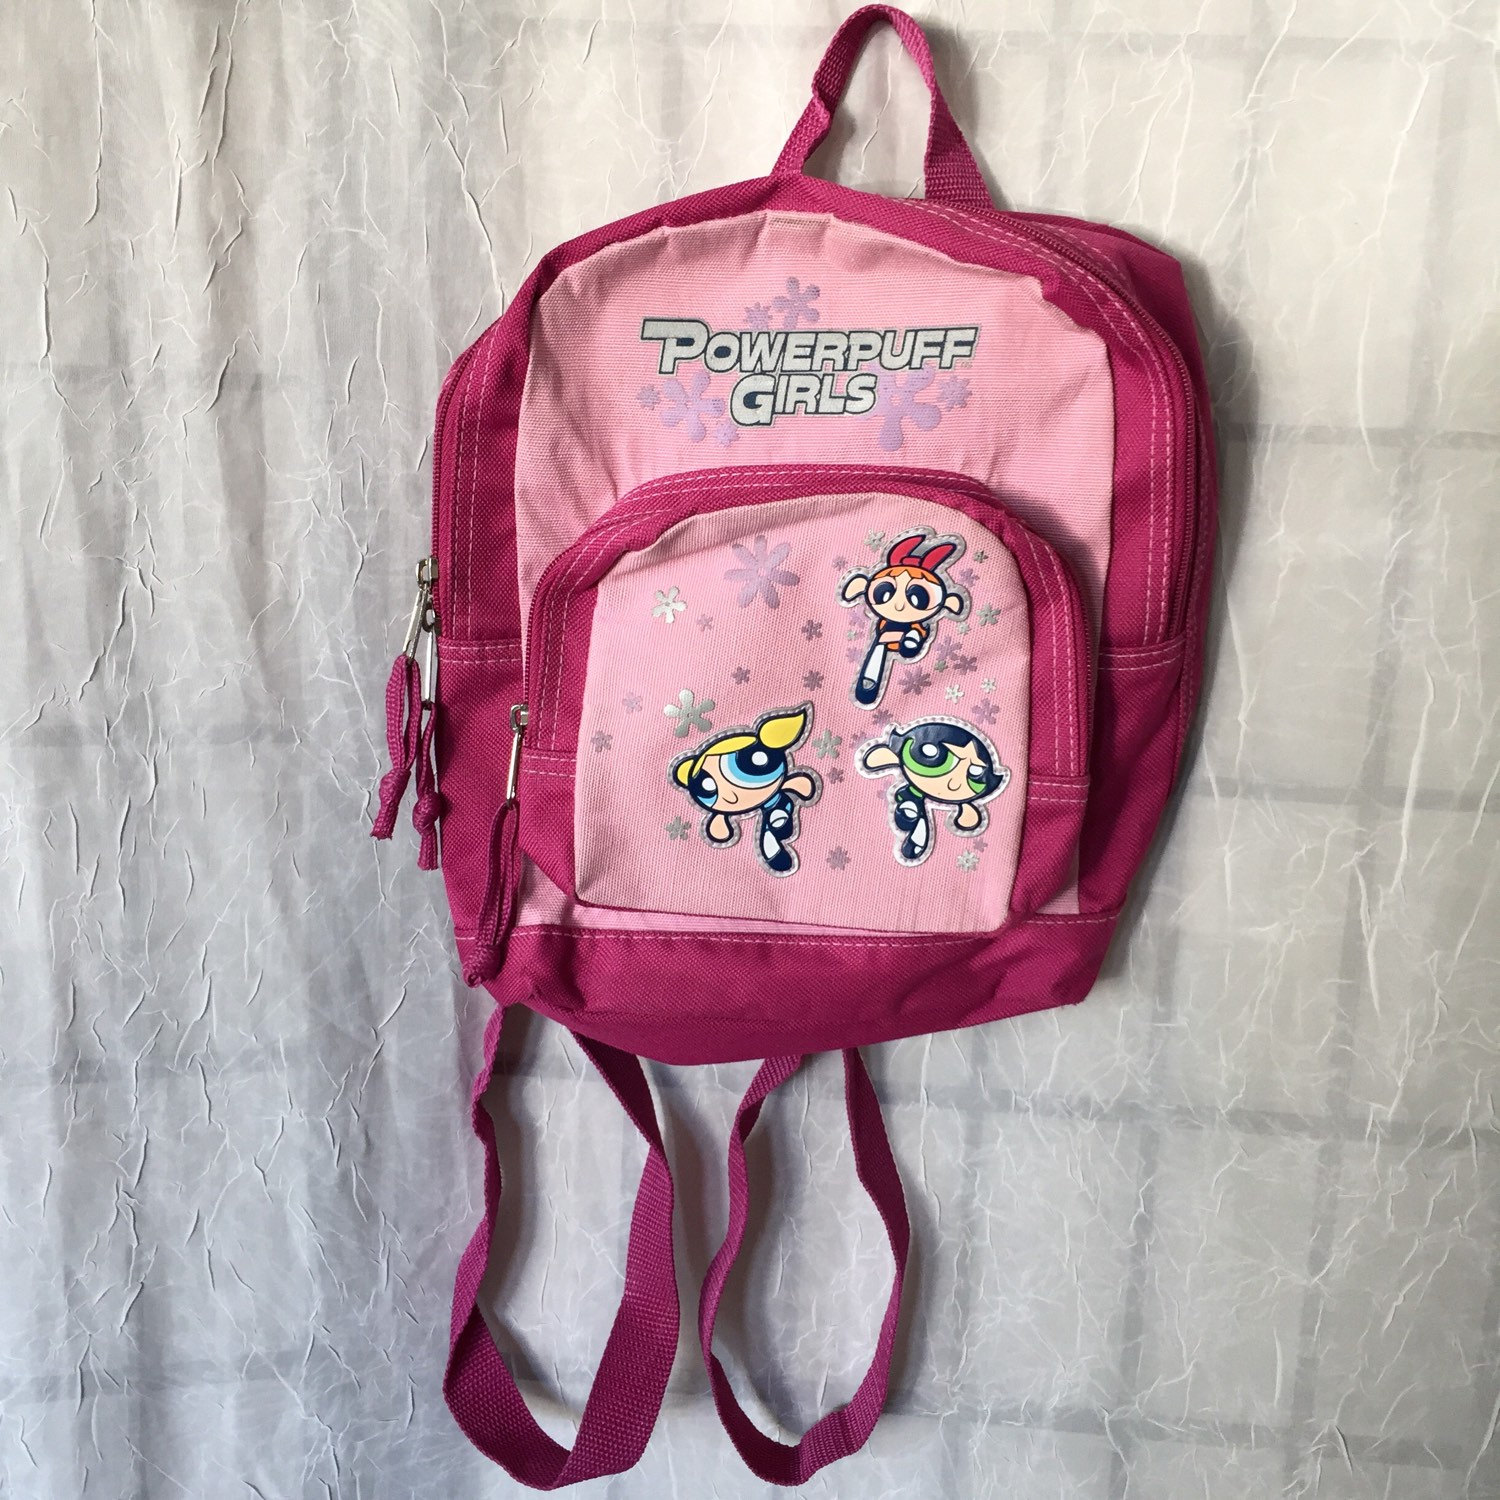 Powerpuff Girls Backpack 1csjW6As